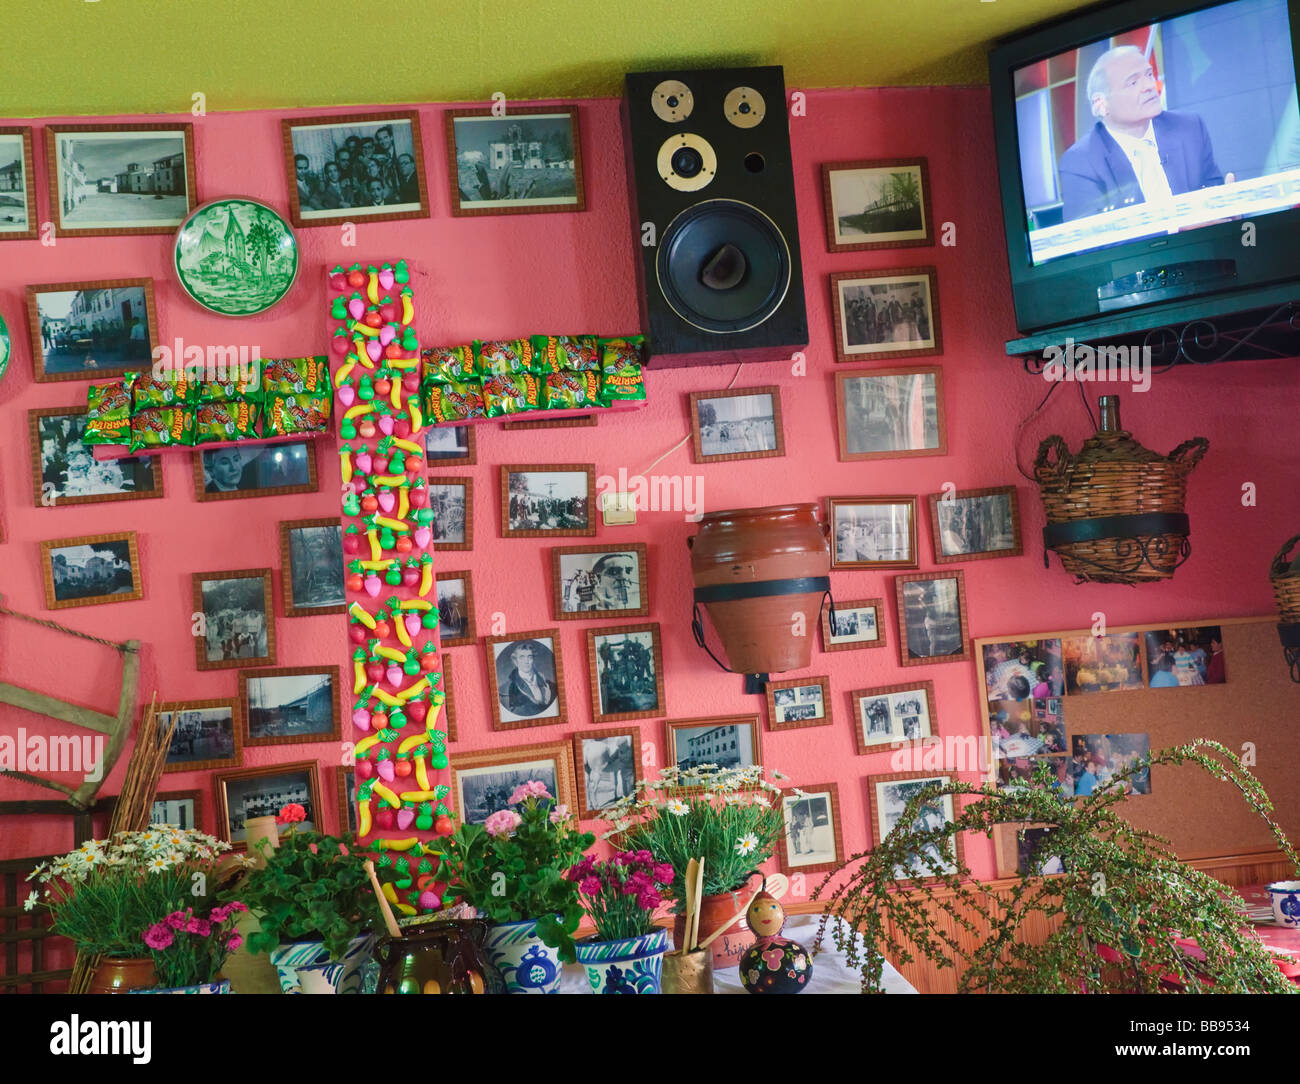 Cruz de Mayo or May Cross made from bags of potato chips and plastic fruit in Meson el Hijuelo Fuente Vaqueros Spain - Stock Image